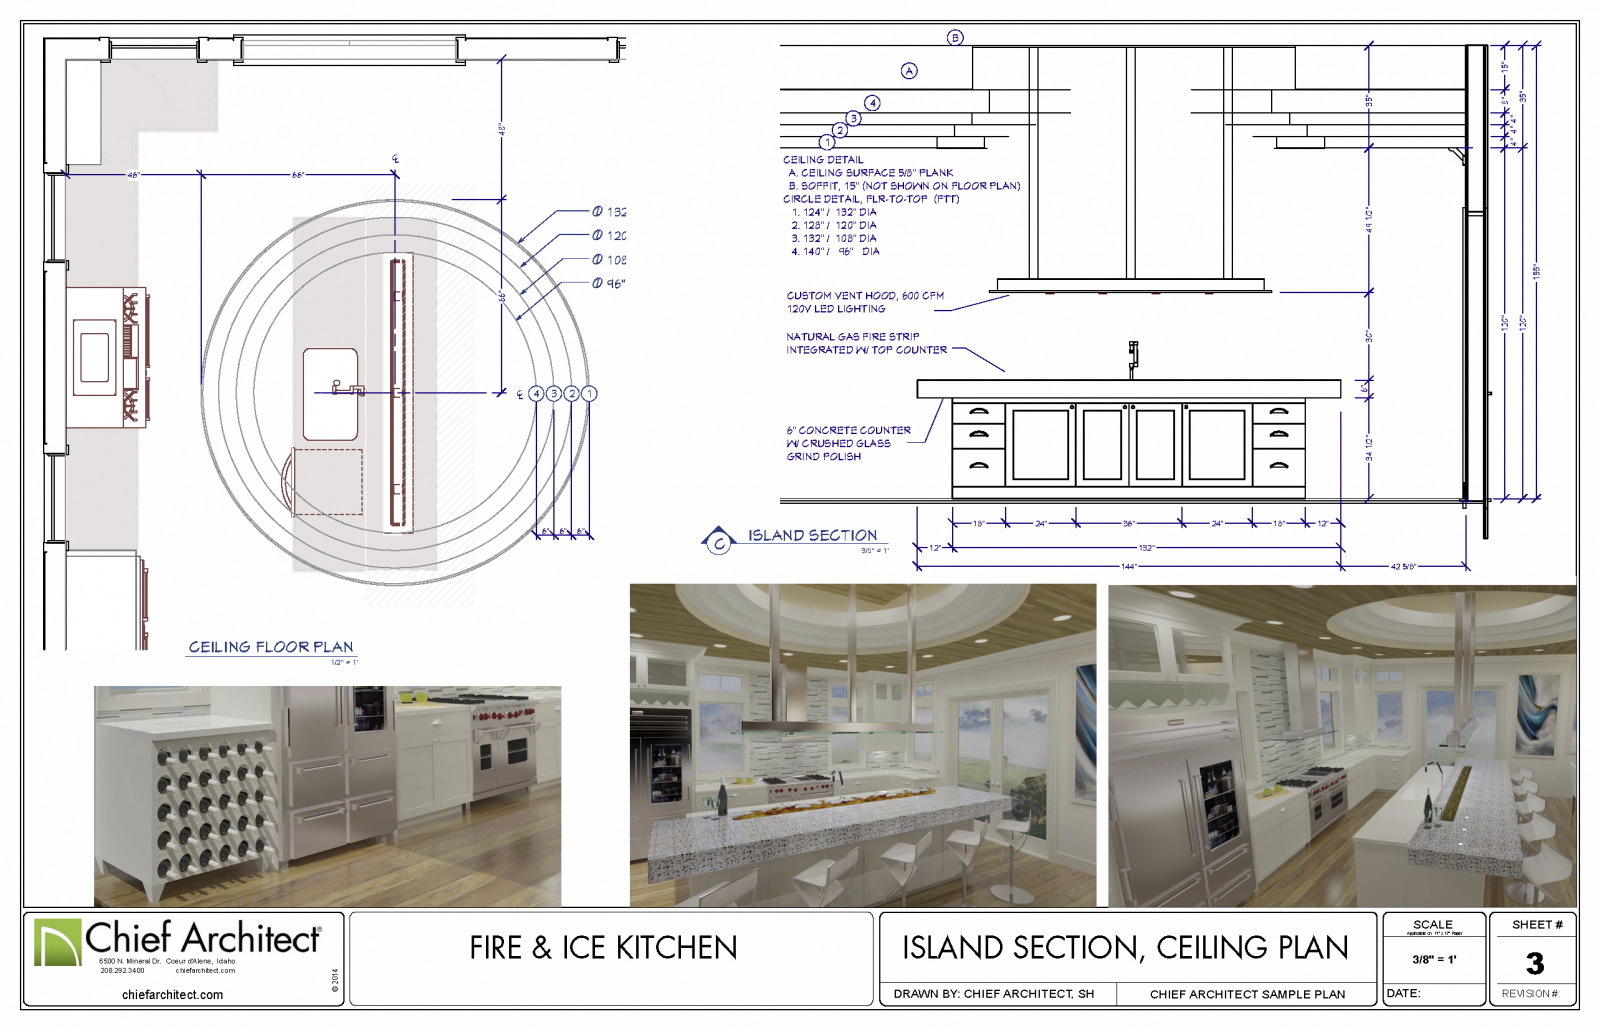 Fire & Ice  Kitchen Plan Detail